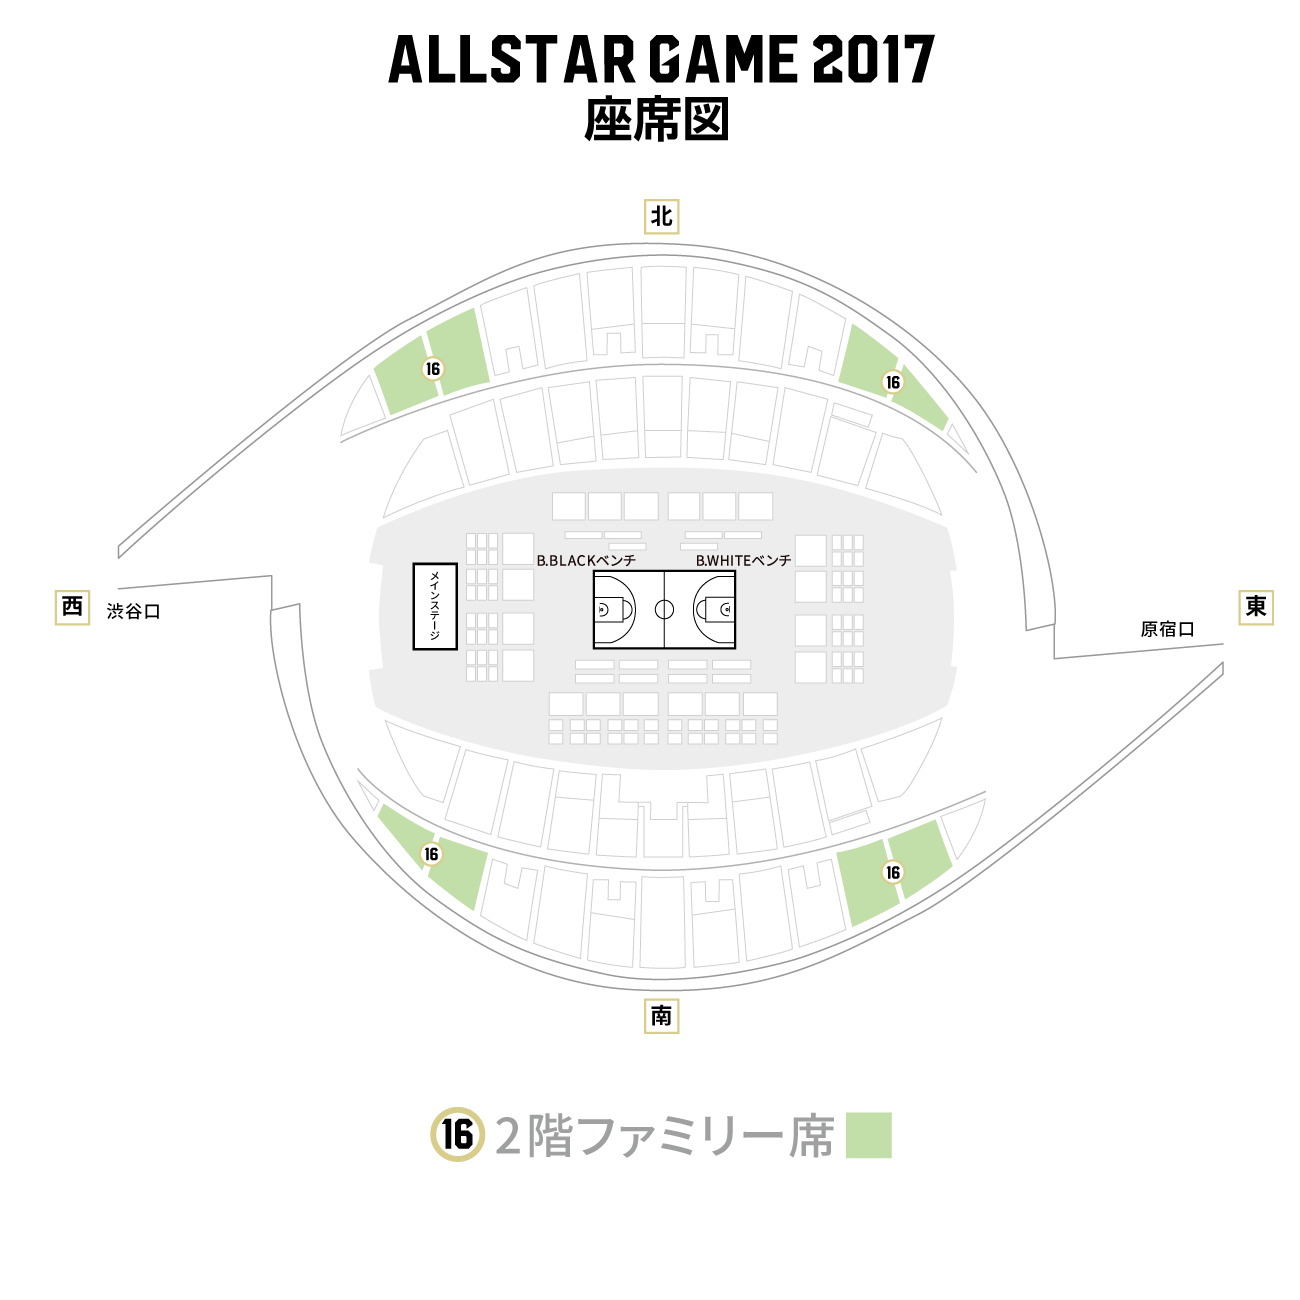 seatview_seat_16.png